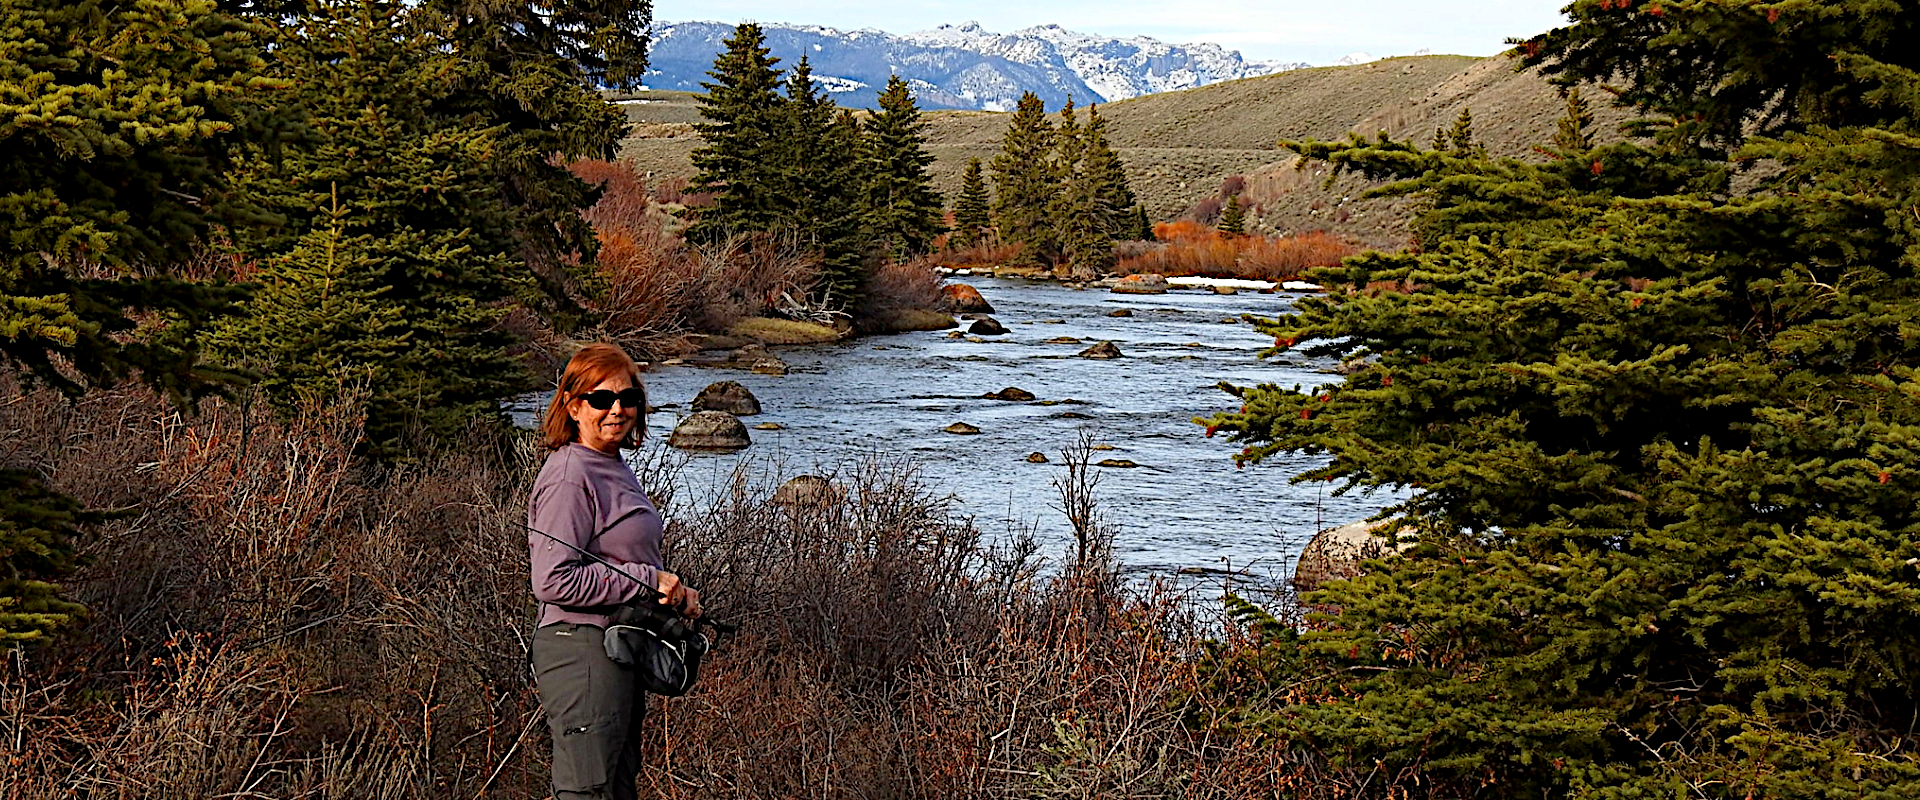 Wendy nelson CEO of Wind River Wealth Advisors, who's services include, portfolio management, asset management, investment management, wealth management, retirement planning, and financial planning relaxes as she fly fishes in Colorado and Wyoming